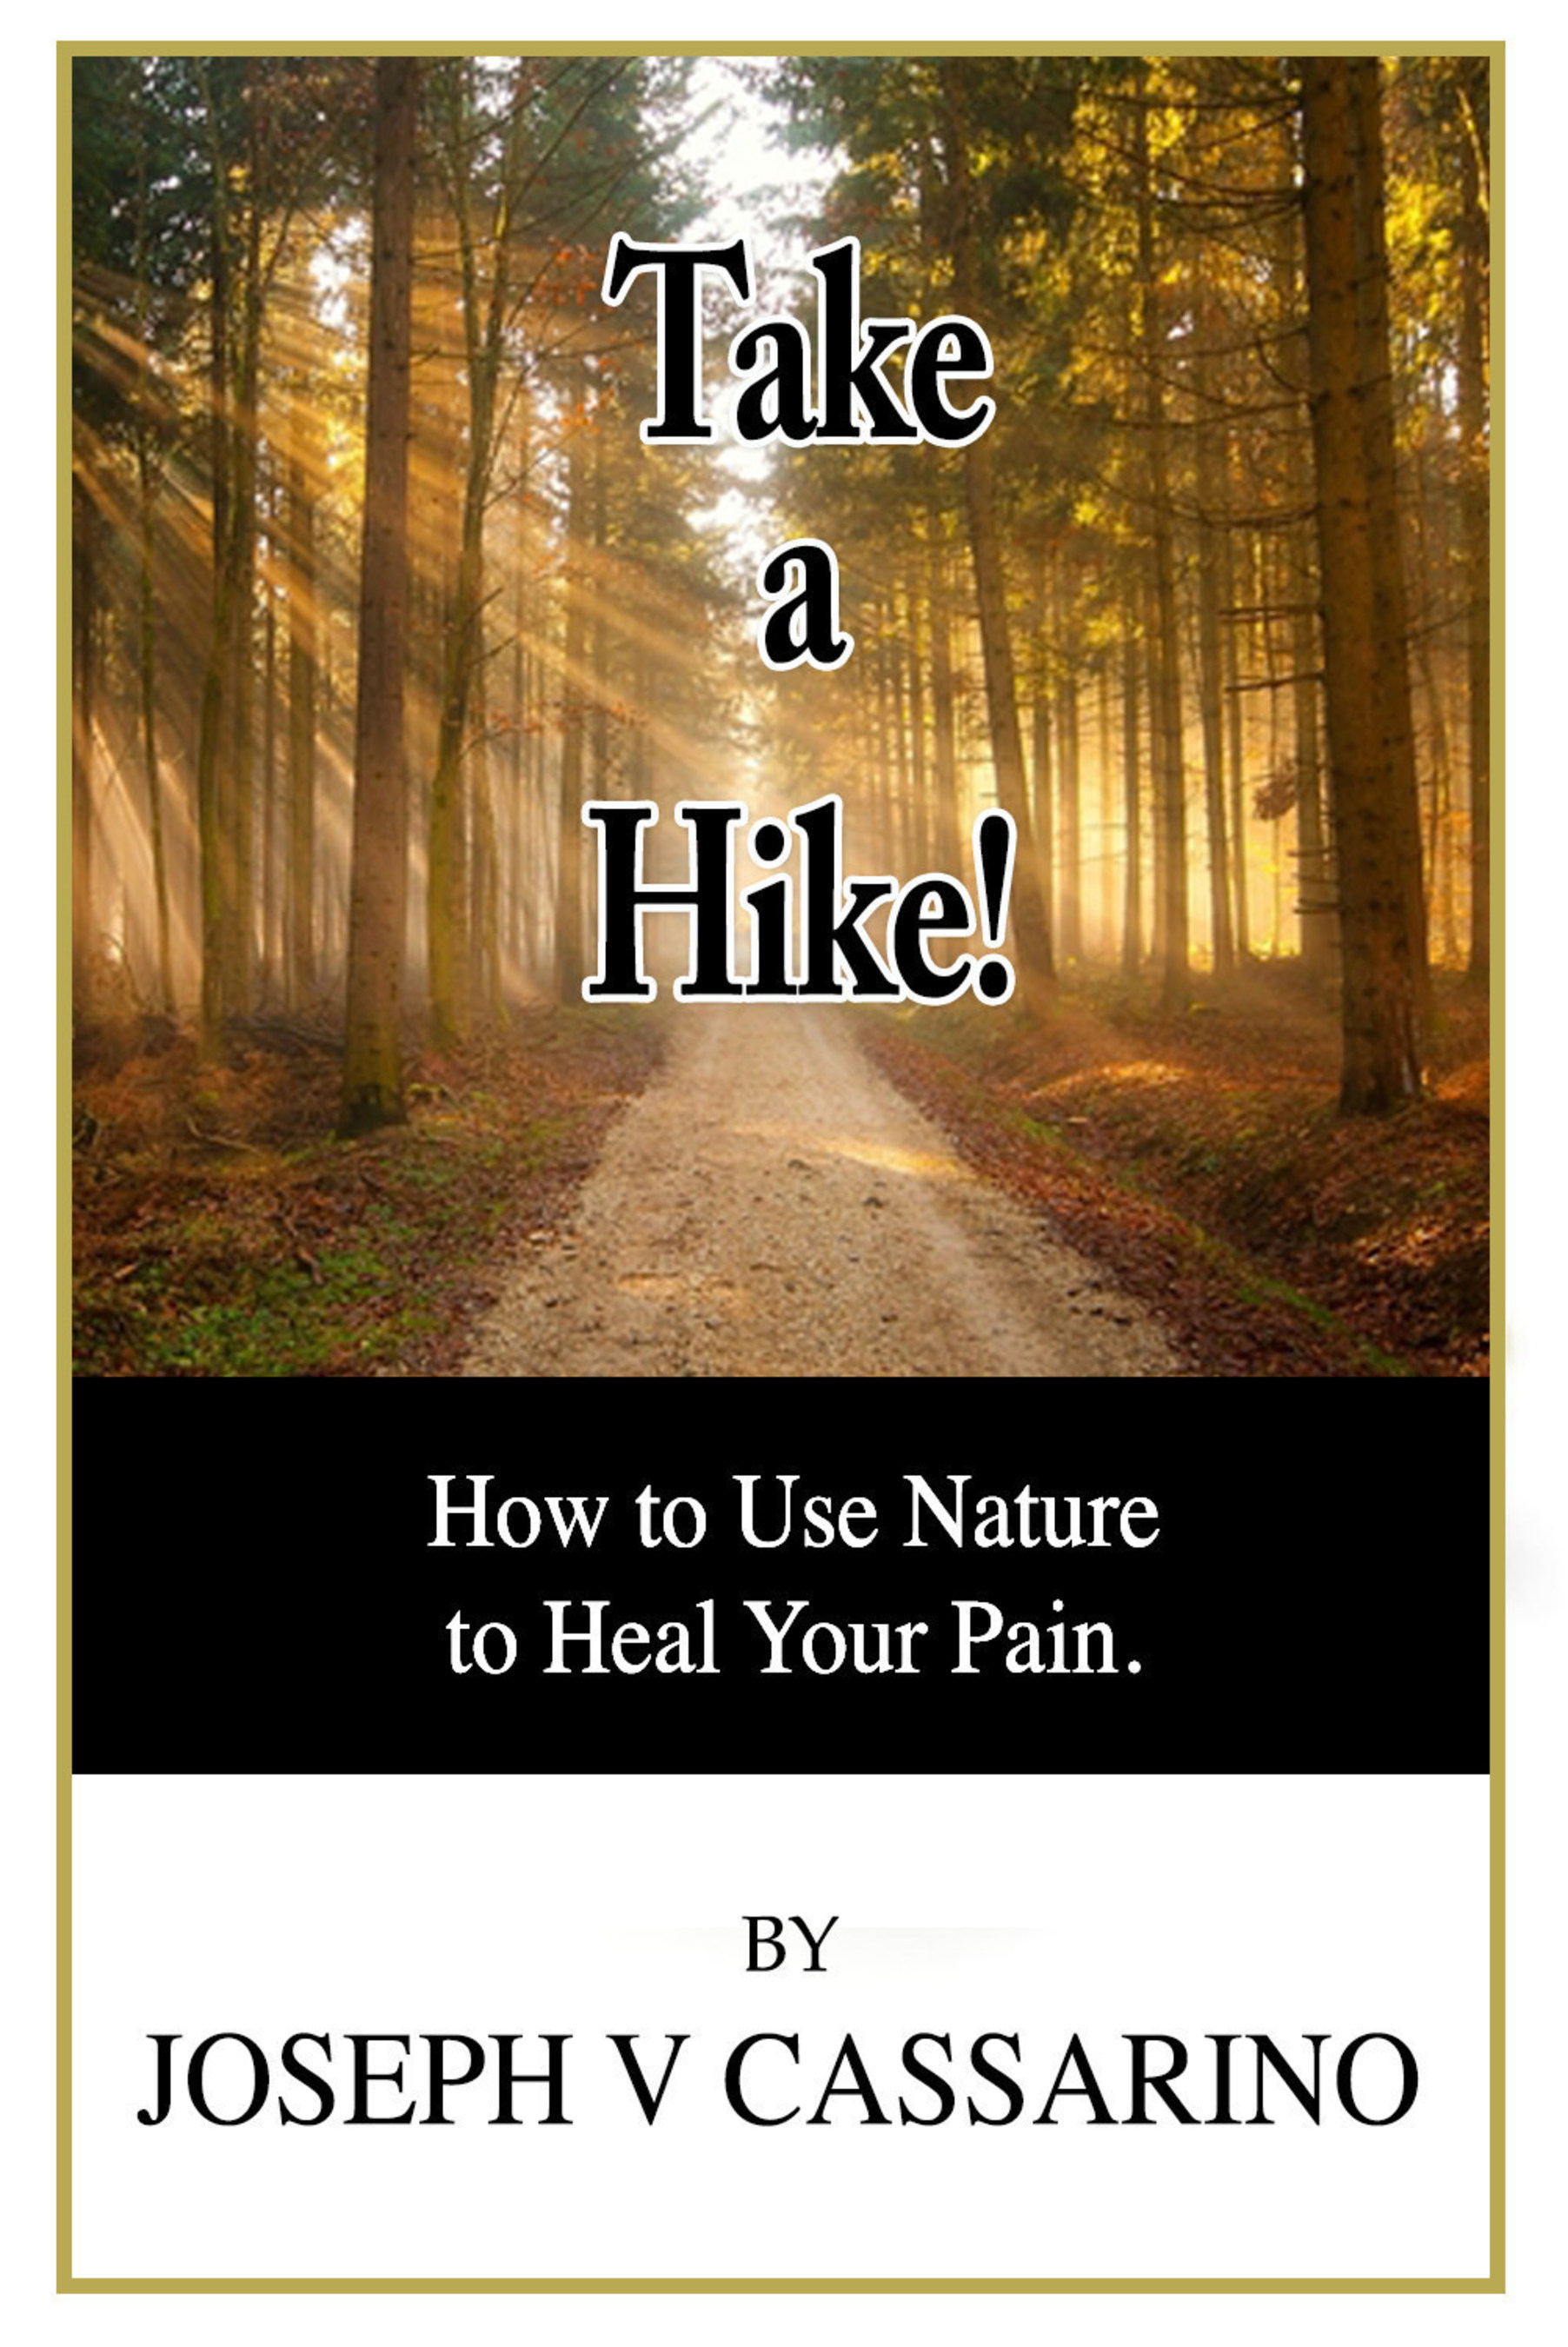 Take A Hike ~ Describes how connecting to nature helps you connect with collective consciousness and ultimately, heal yourself naturally by applying the laws of the universe. Laws which science is now proving are accurate.